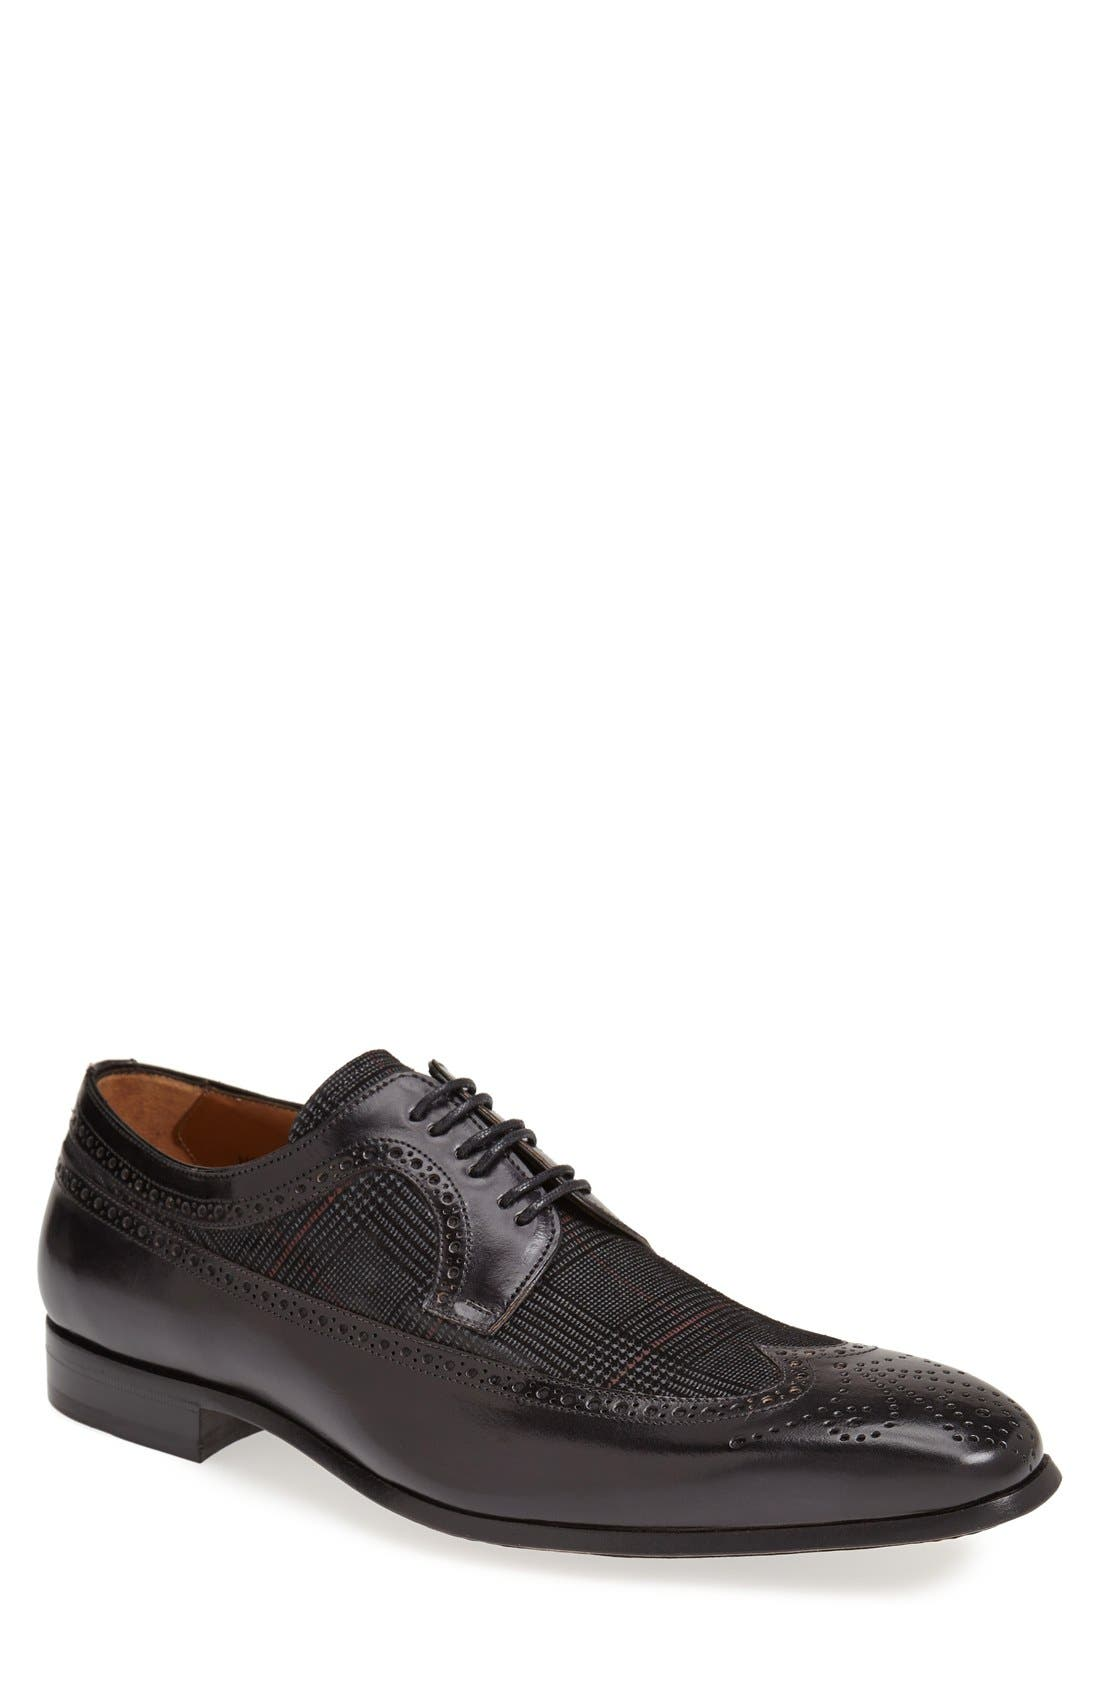 'Johann' Spectator Shoe,                         Main,                         color, Black/ Grey